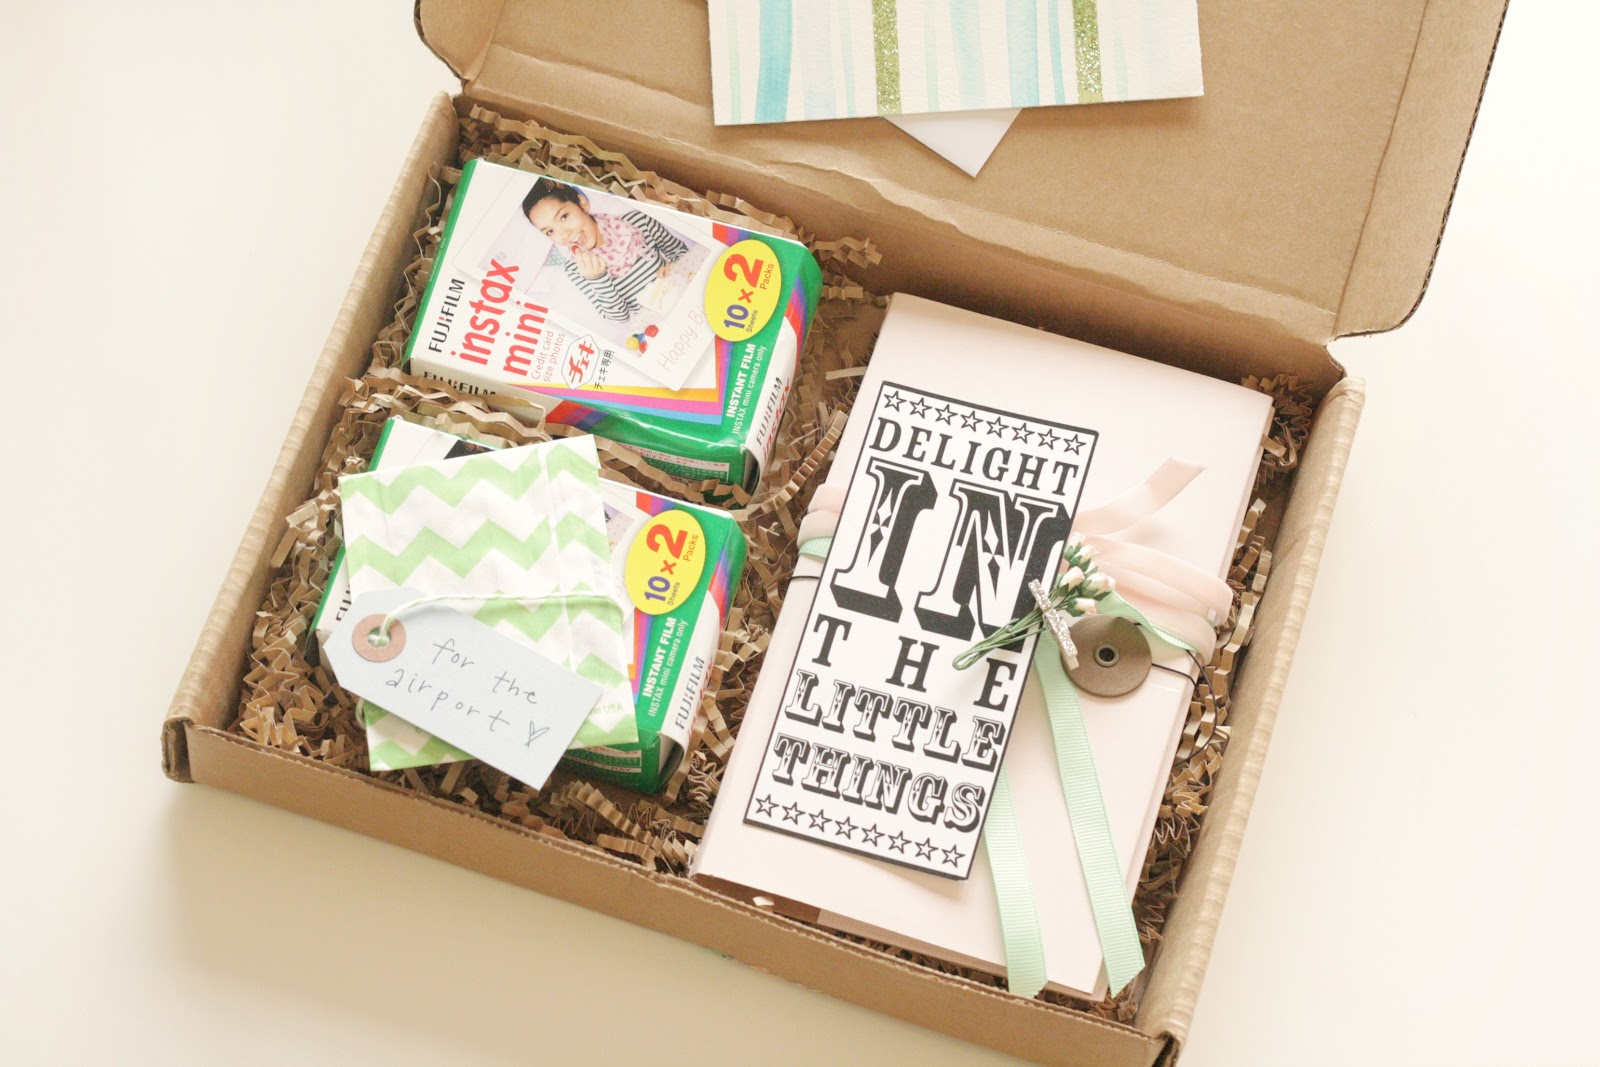 ... + practical going away gifts. You know how I love a creative gift